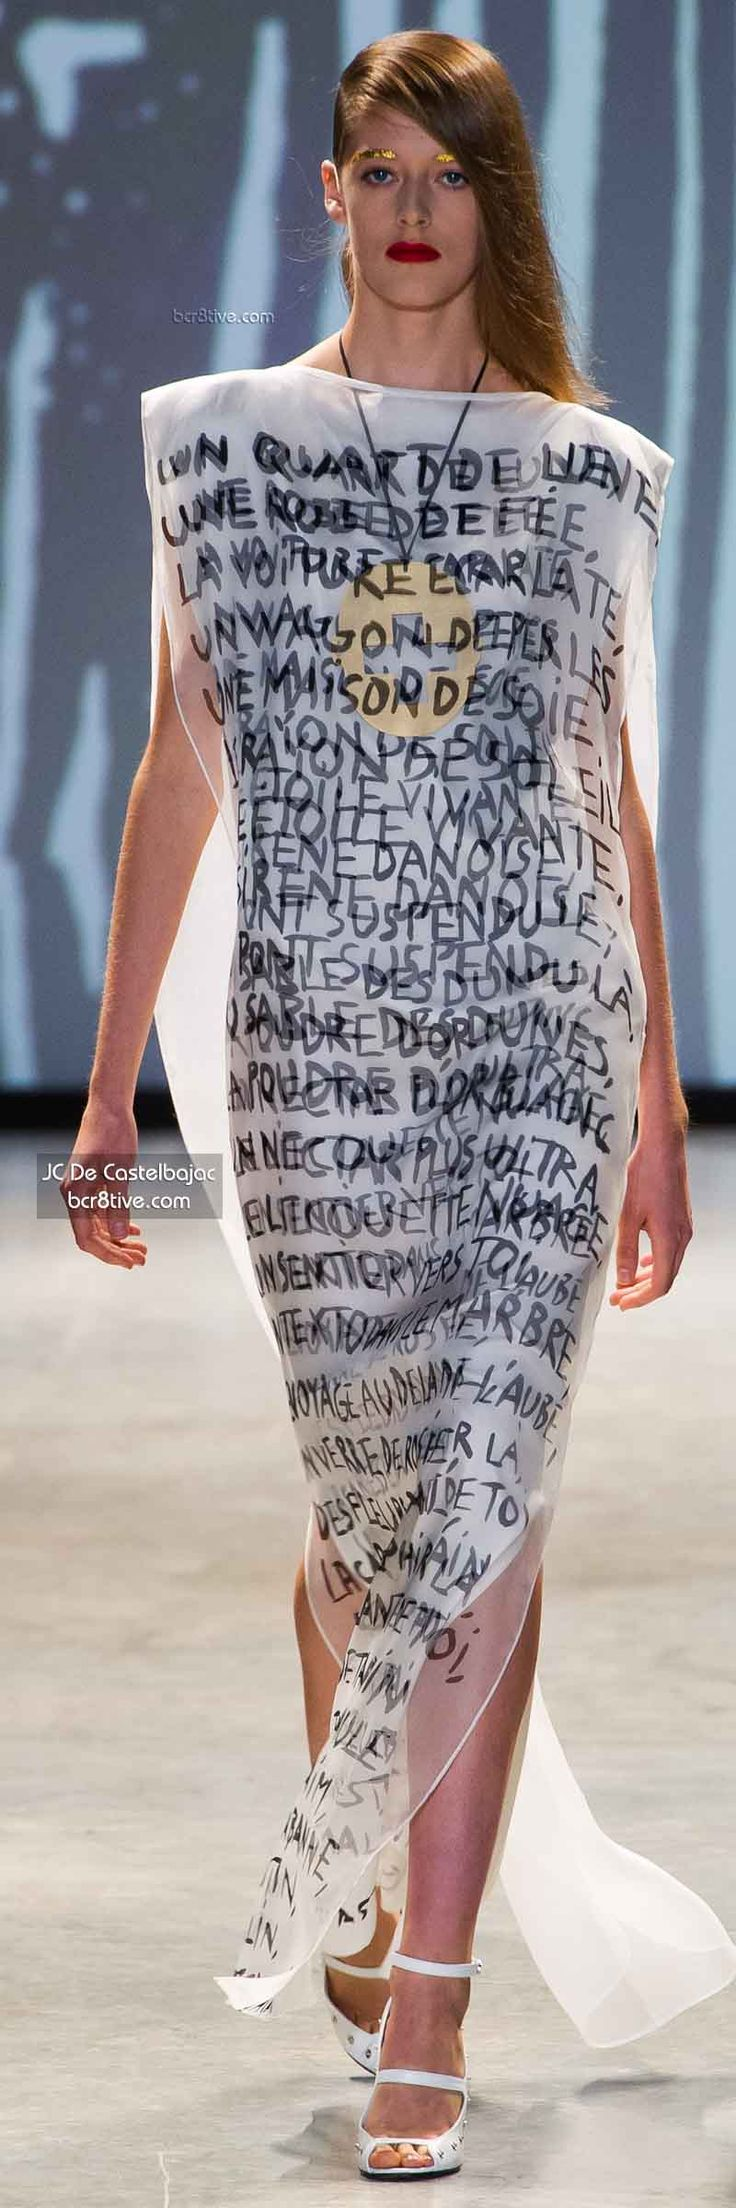 Could you have a dress like this with the words, Gods key words, about relationship in yellow? And the dress built like khaleeji dress.